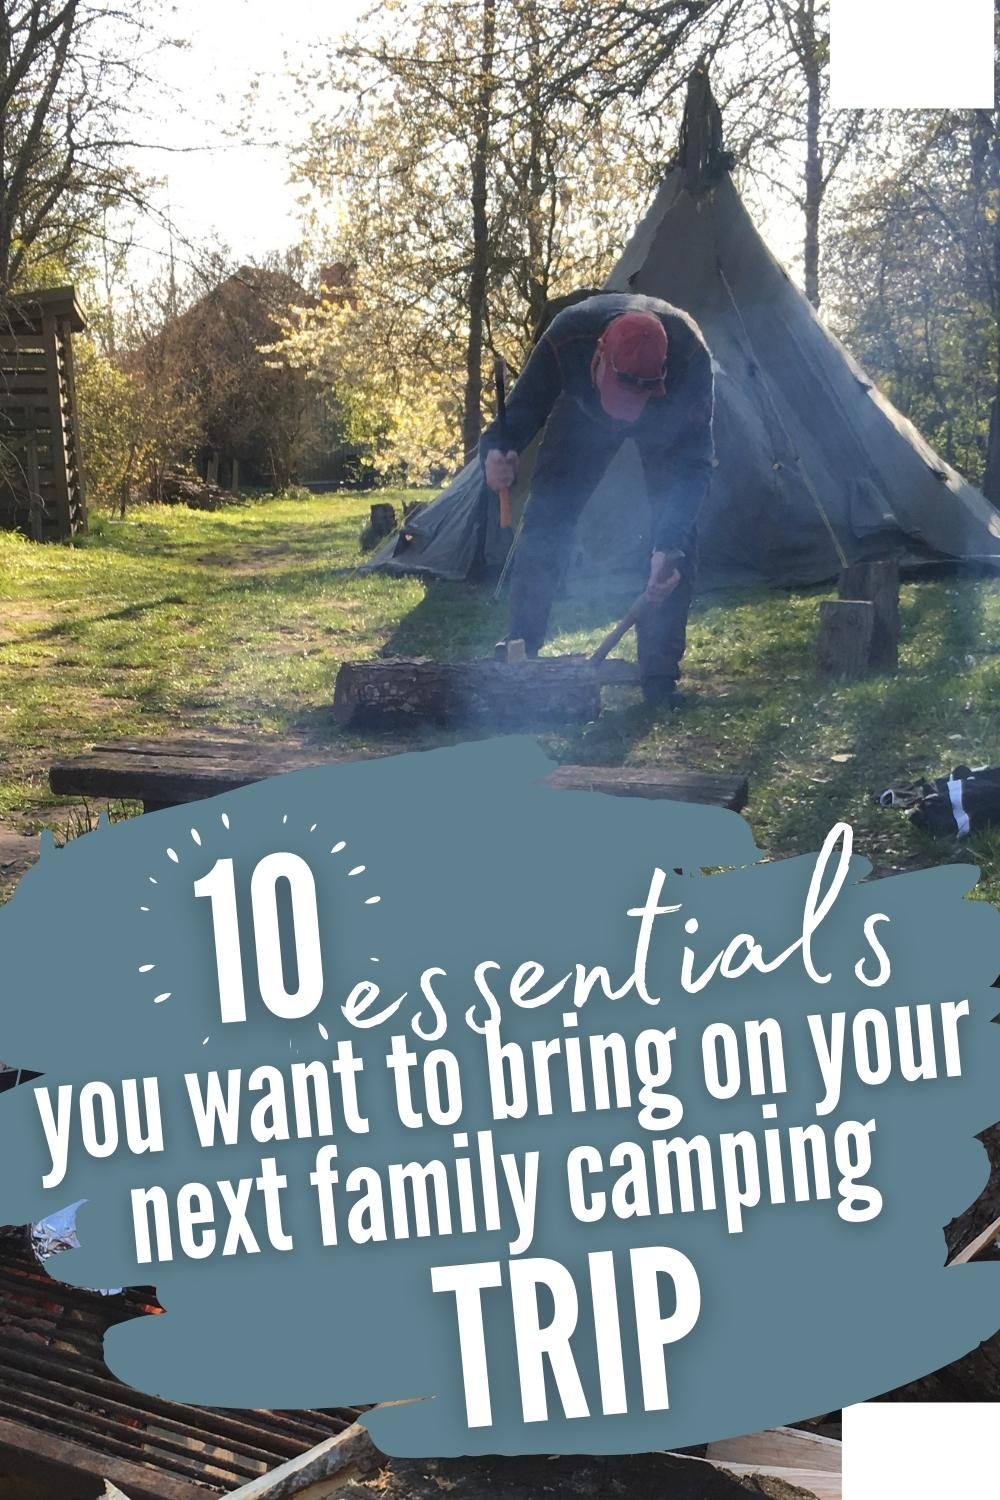 family camping - man chopping wood, and a caption text - optimized for Pinterest.